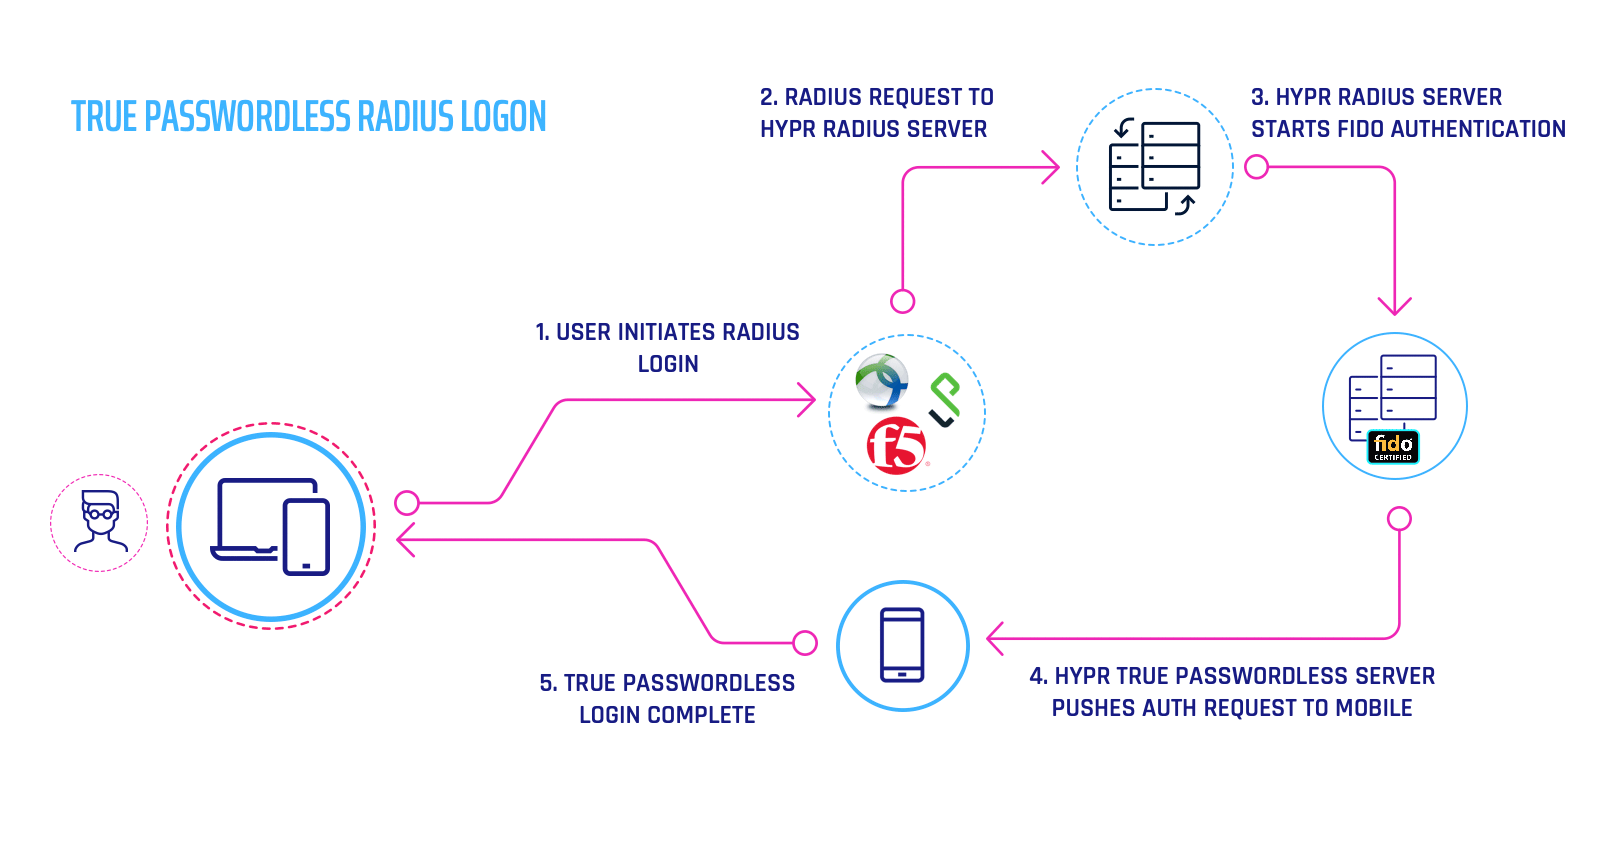 True Passwordless RADIUS Authentication